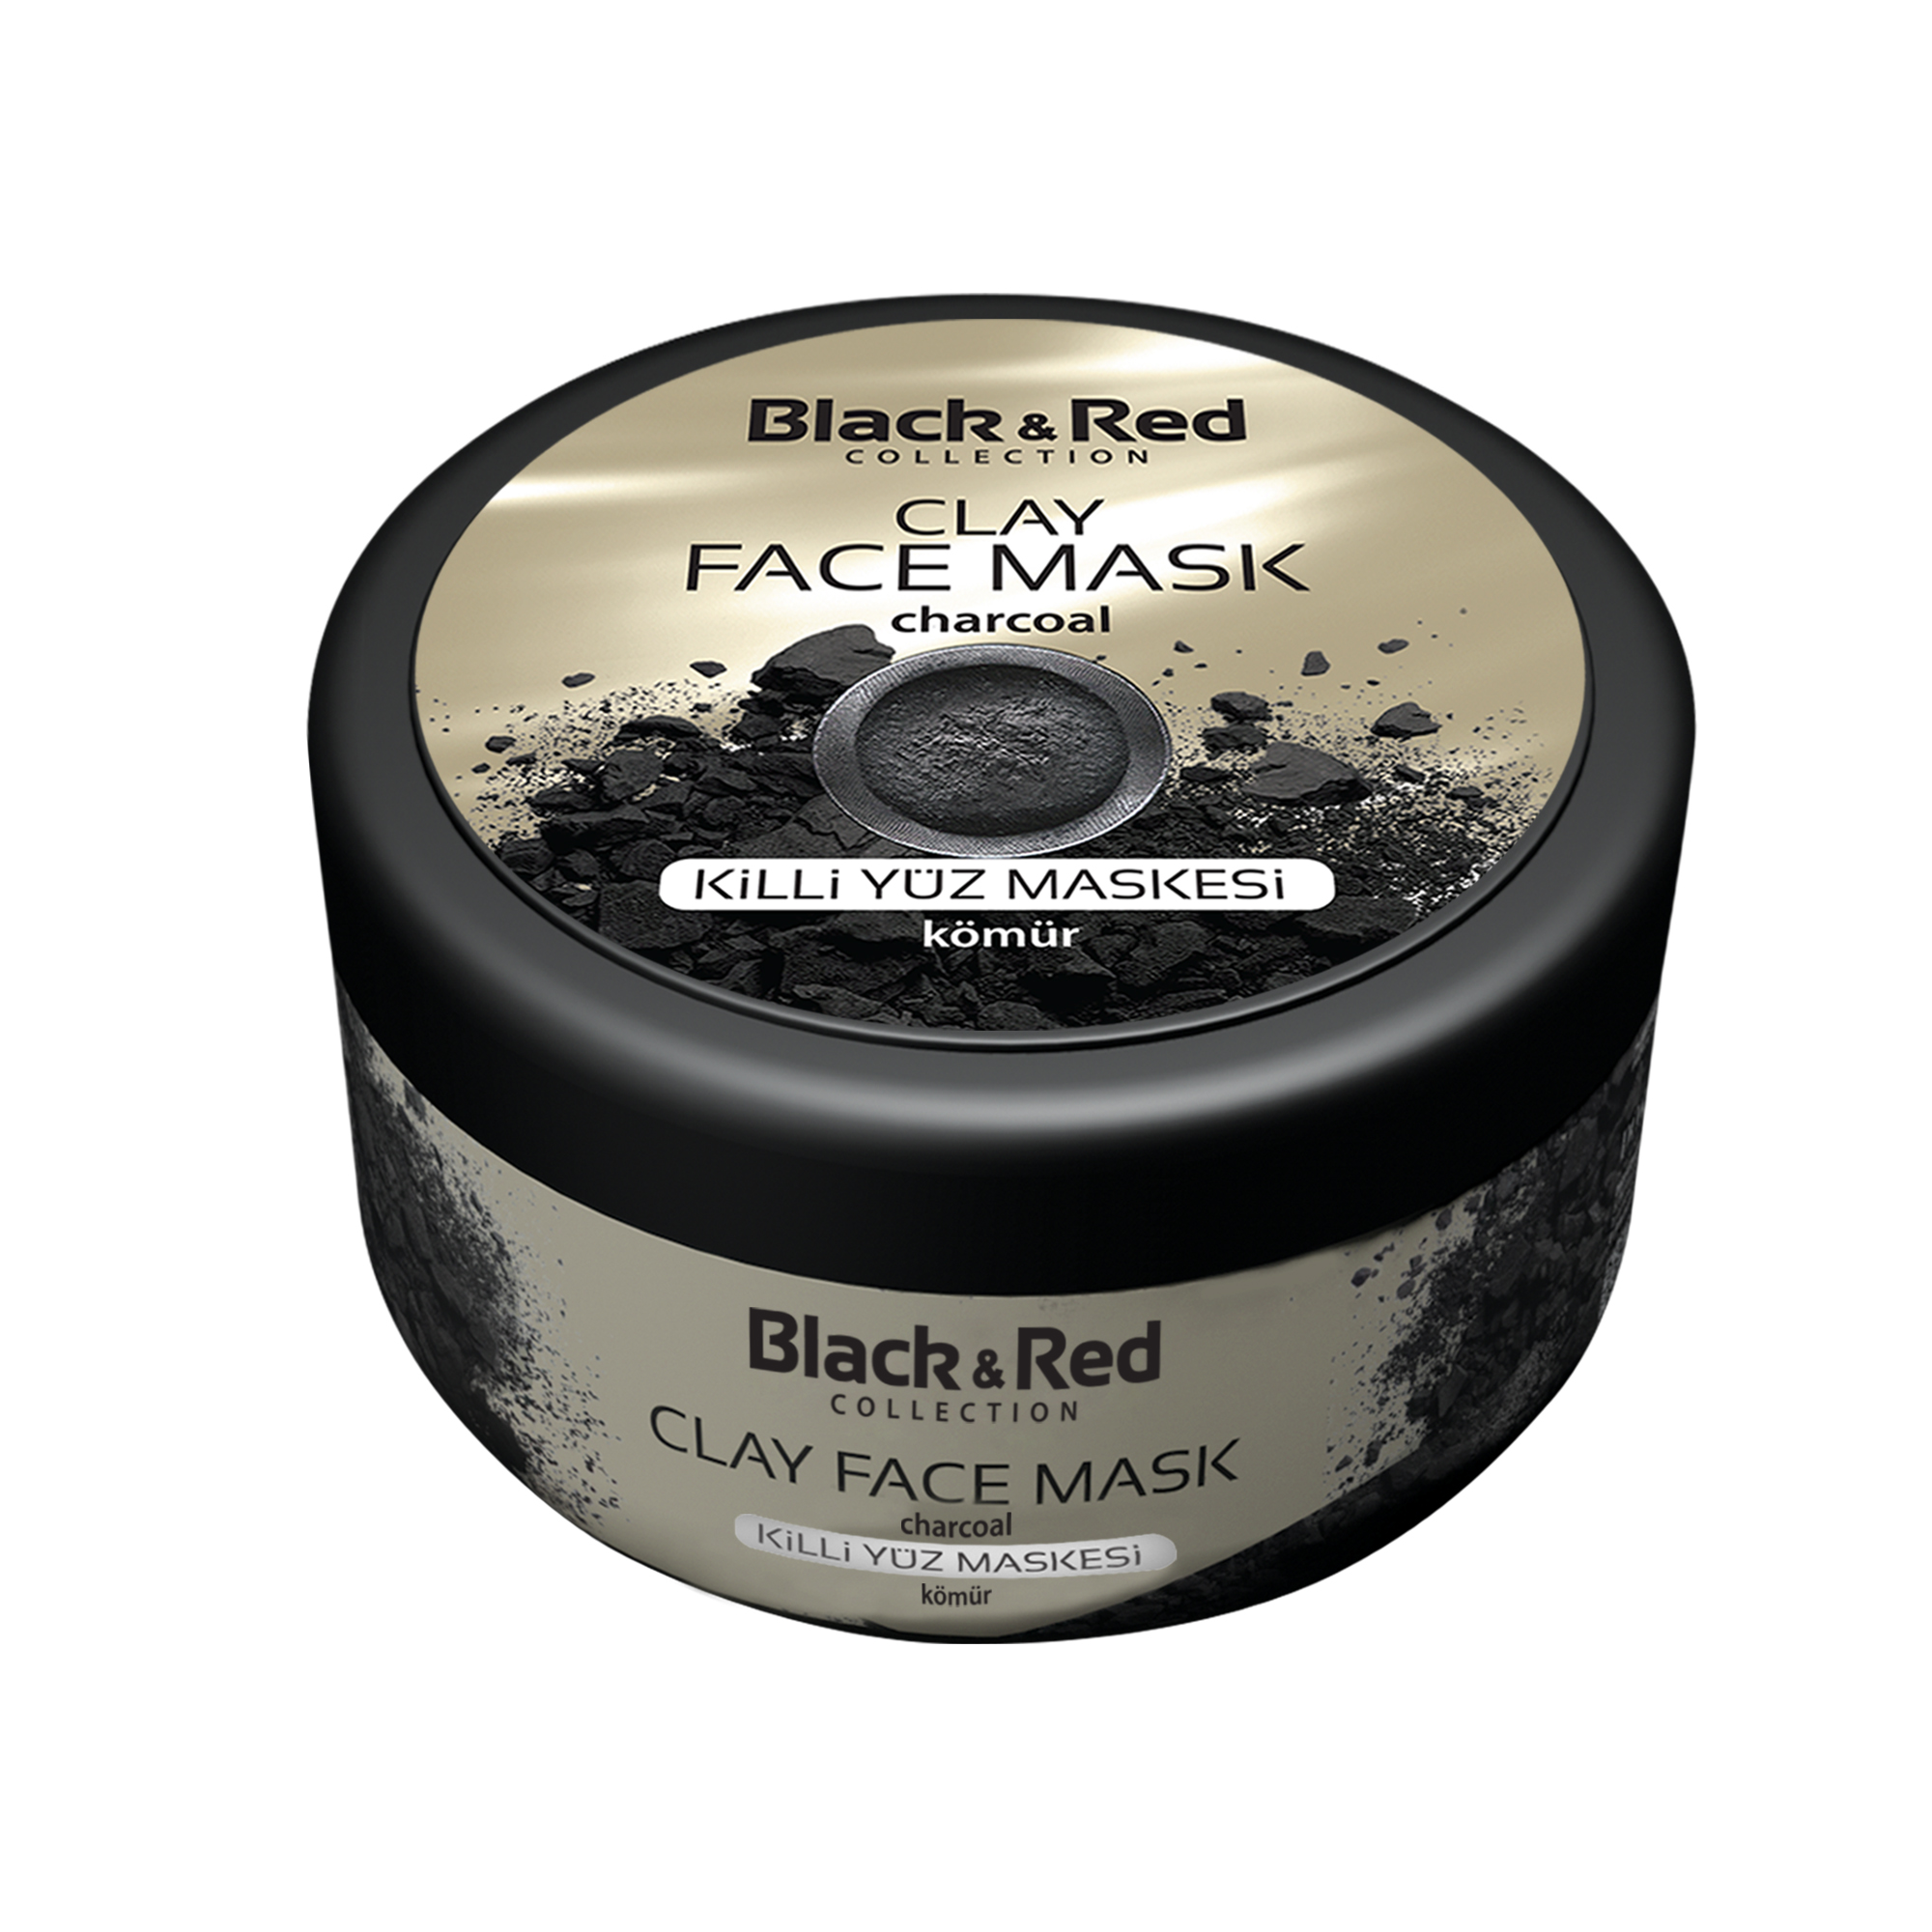 B&R CLAY FACE MASK - CHARCOAL / 2101-04